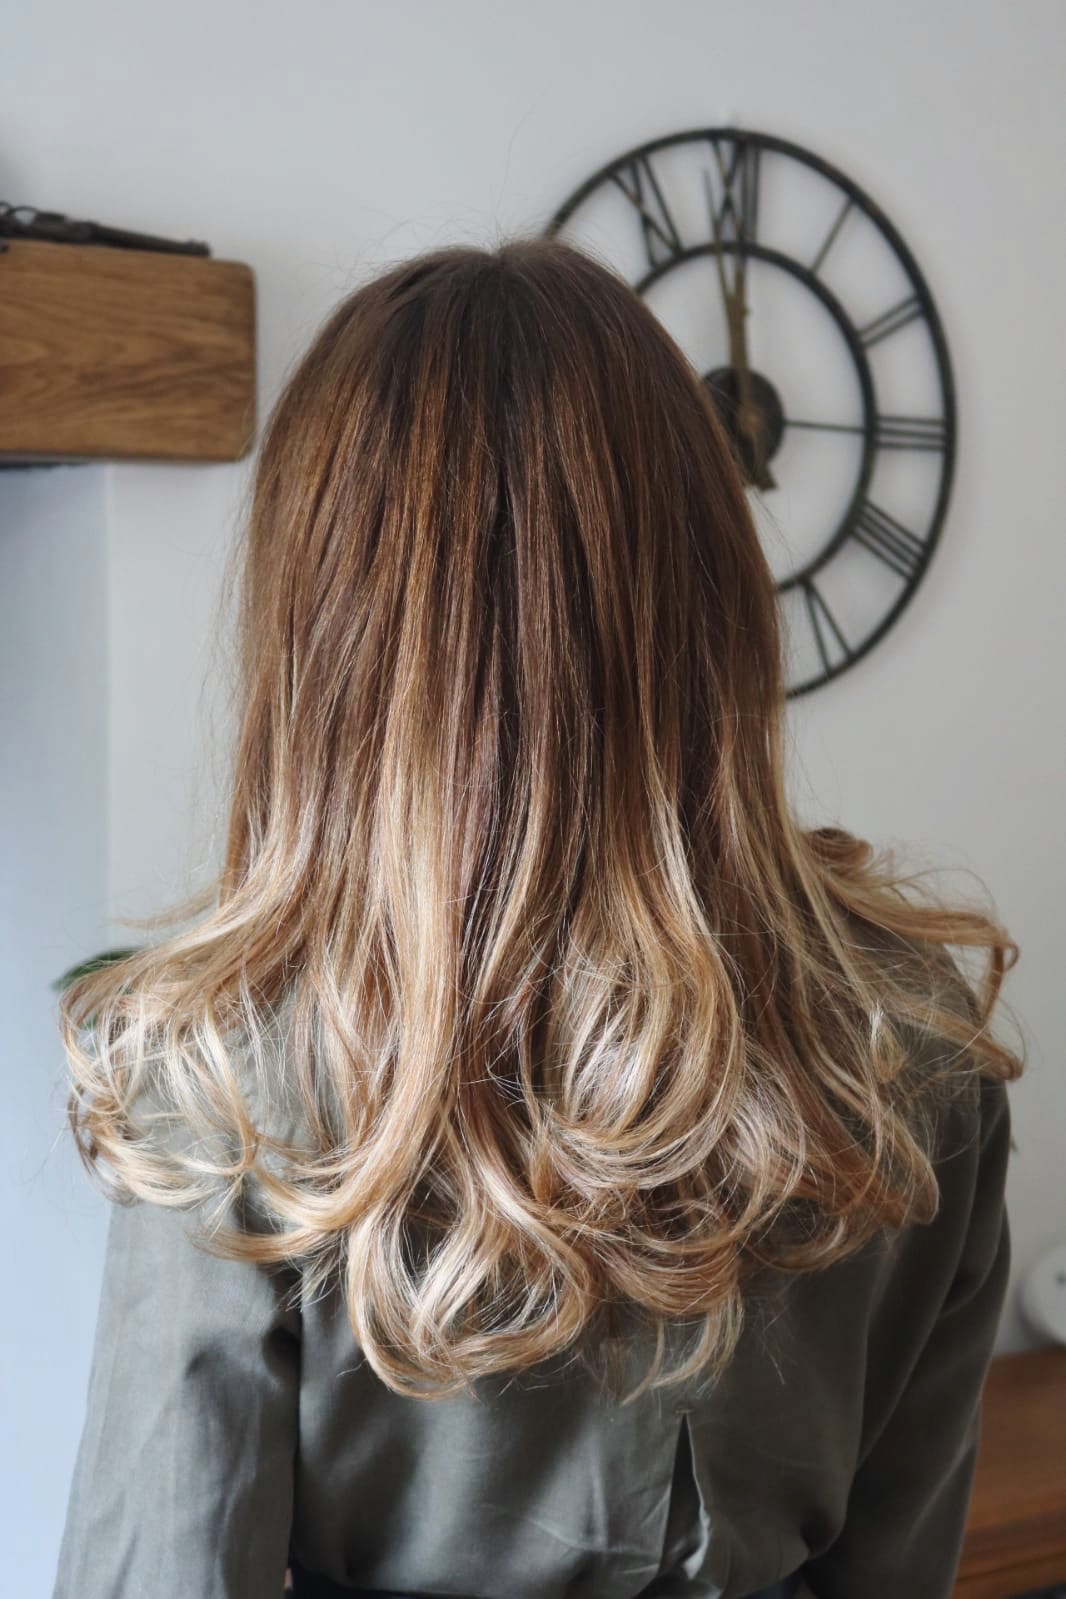 Blonde balayage for the summer